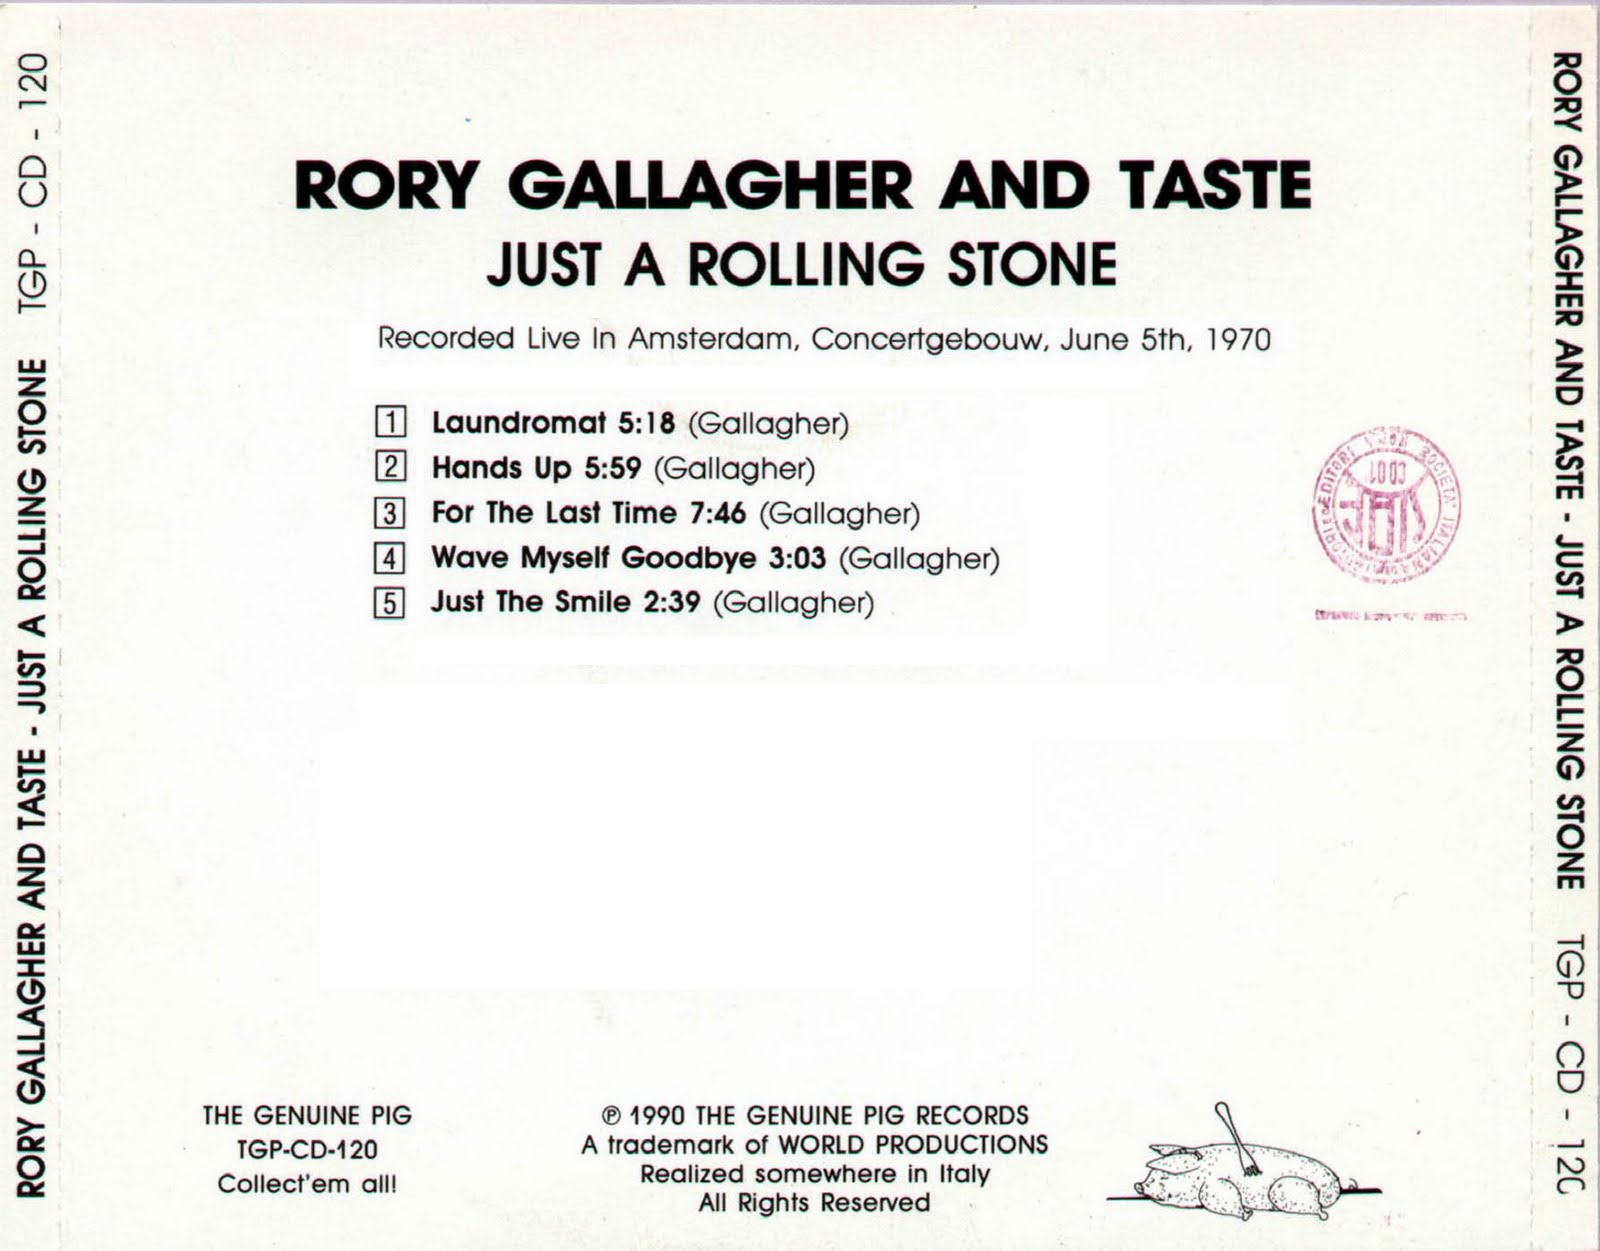 For the Last Time  (Rory Gallagher) TasteRollingStoneBack